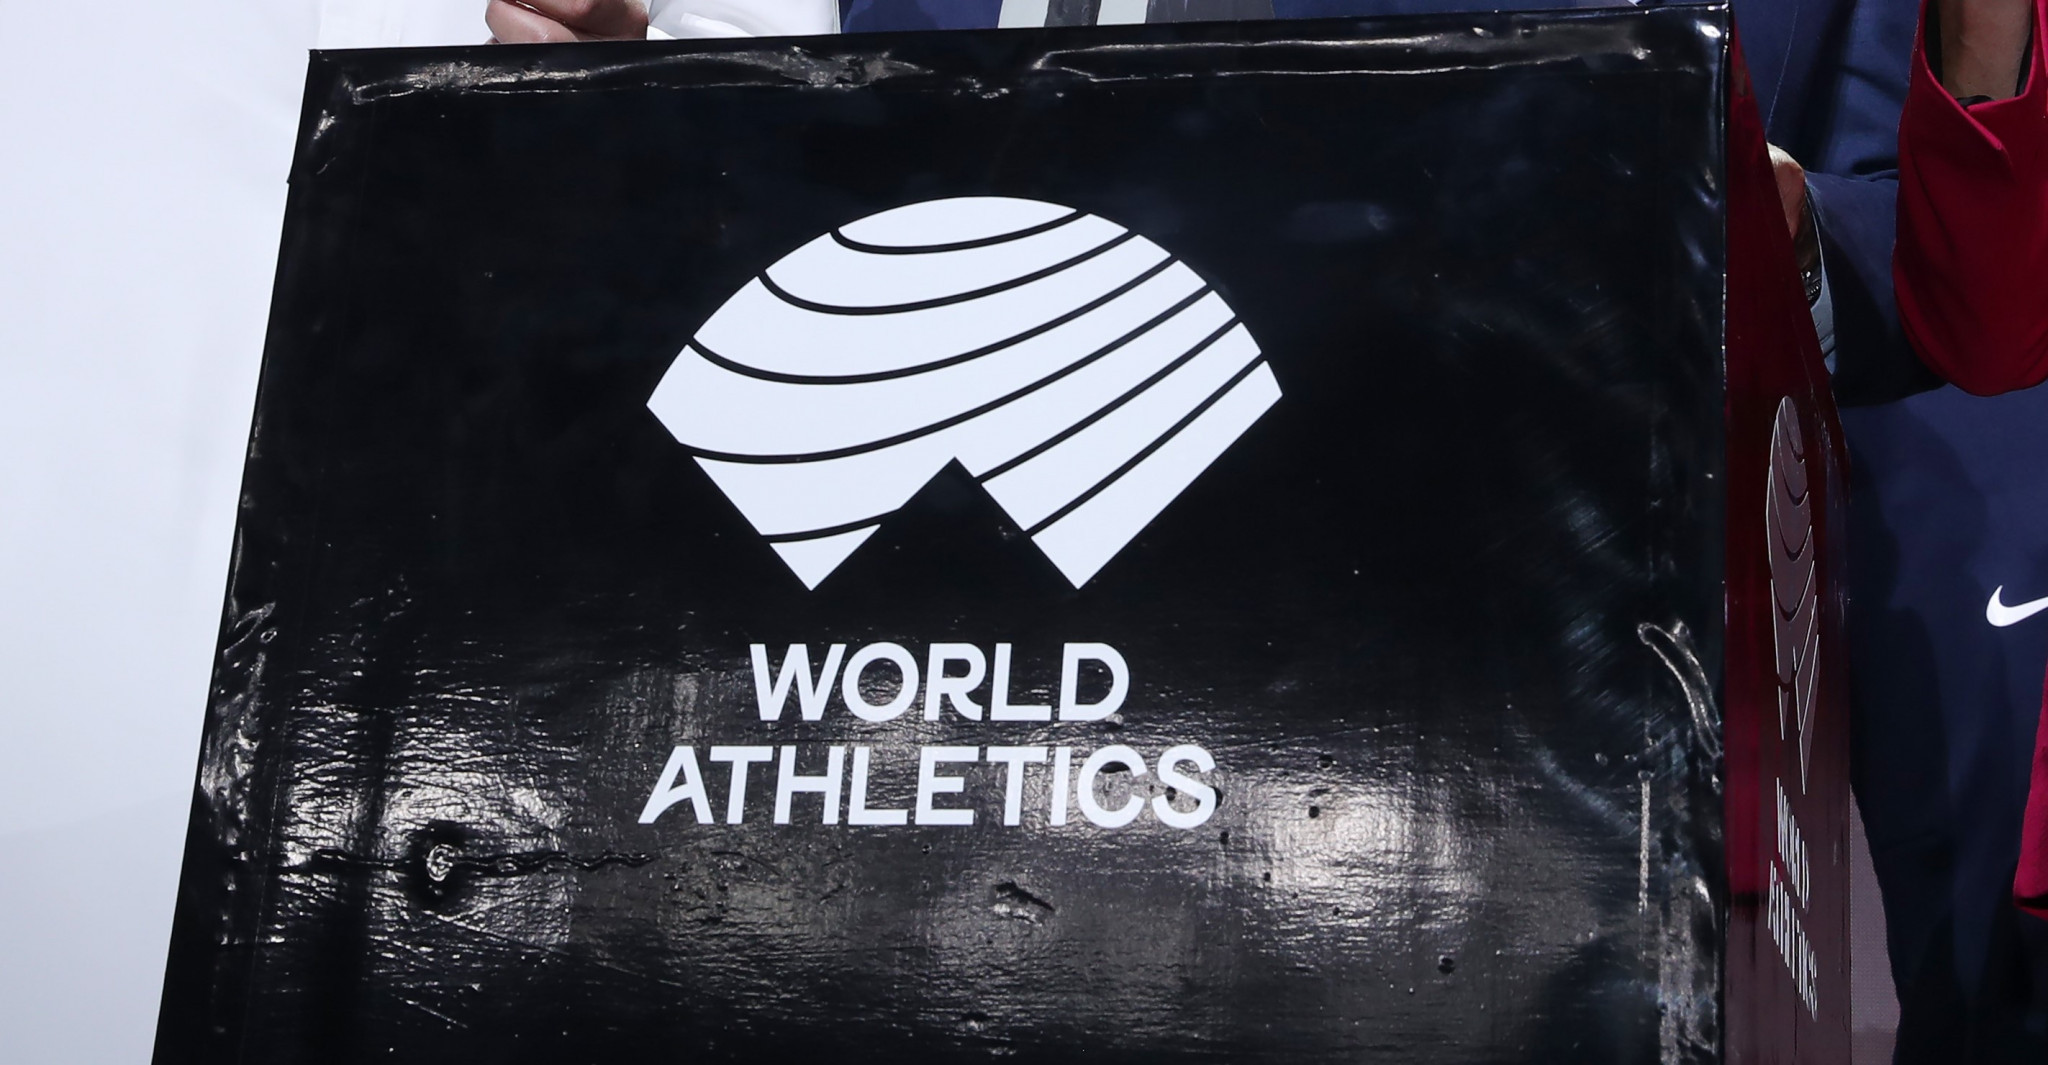 World Athletics freezes Olympic qualifying window and places half of staff on furlough